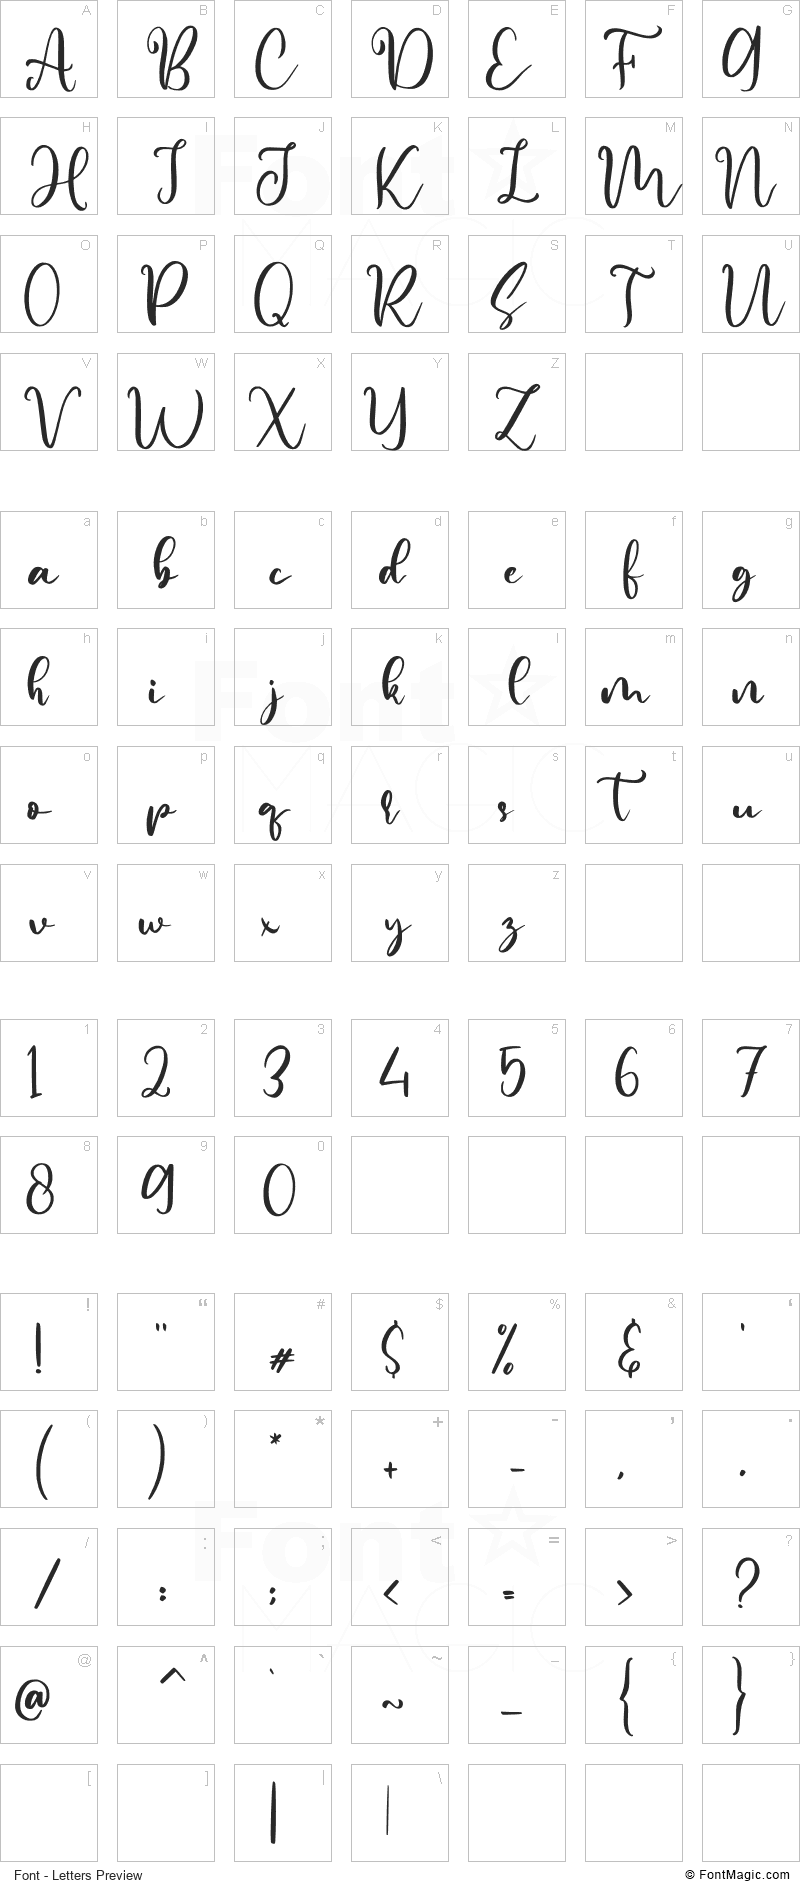 Rephina Font - All Latters Preview Chart